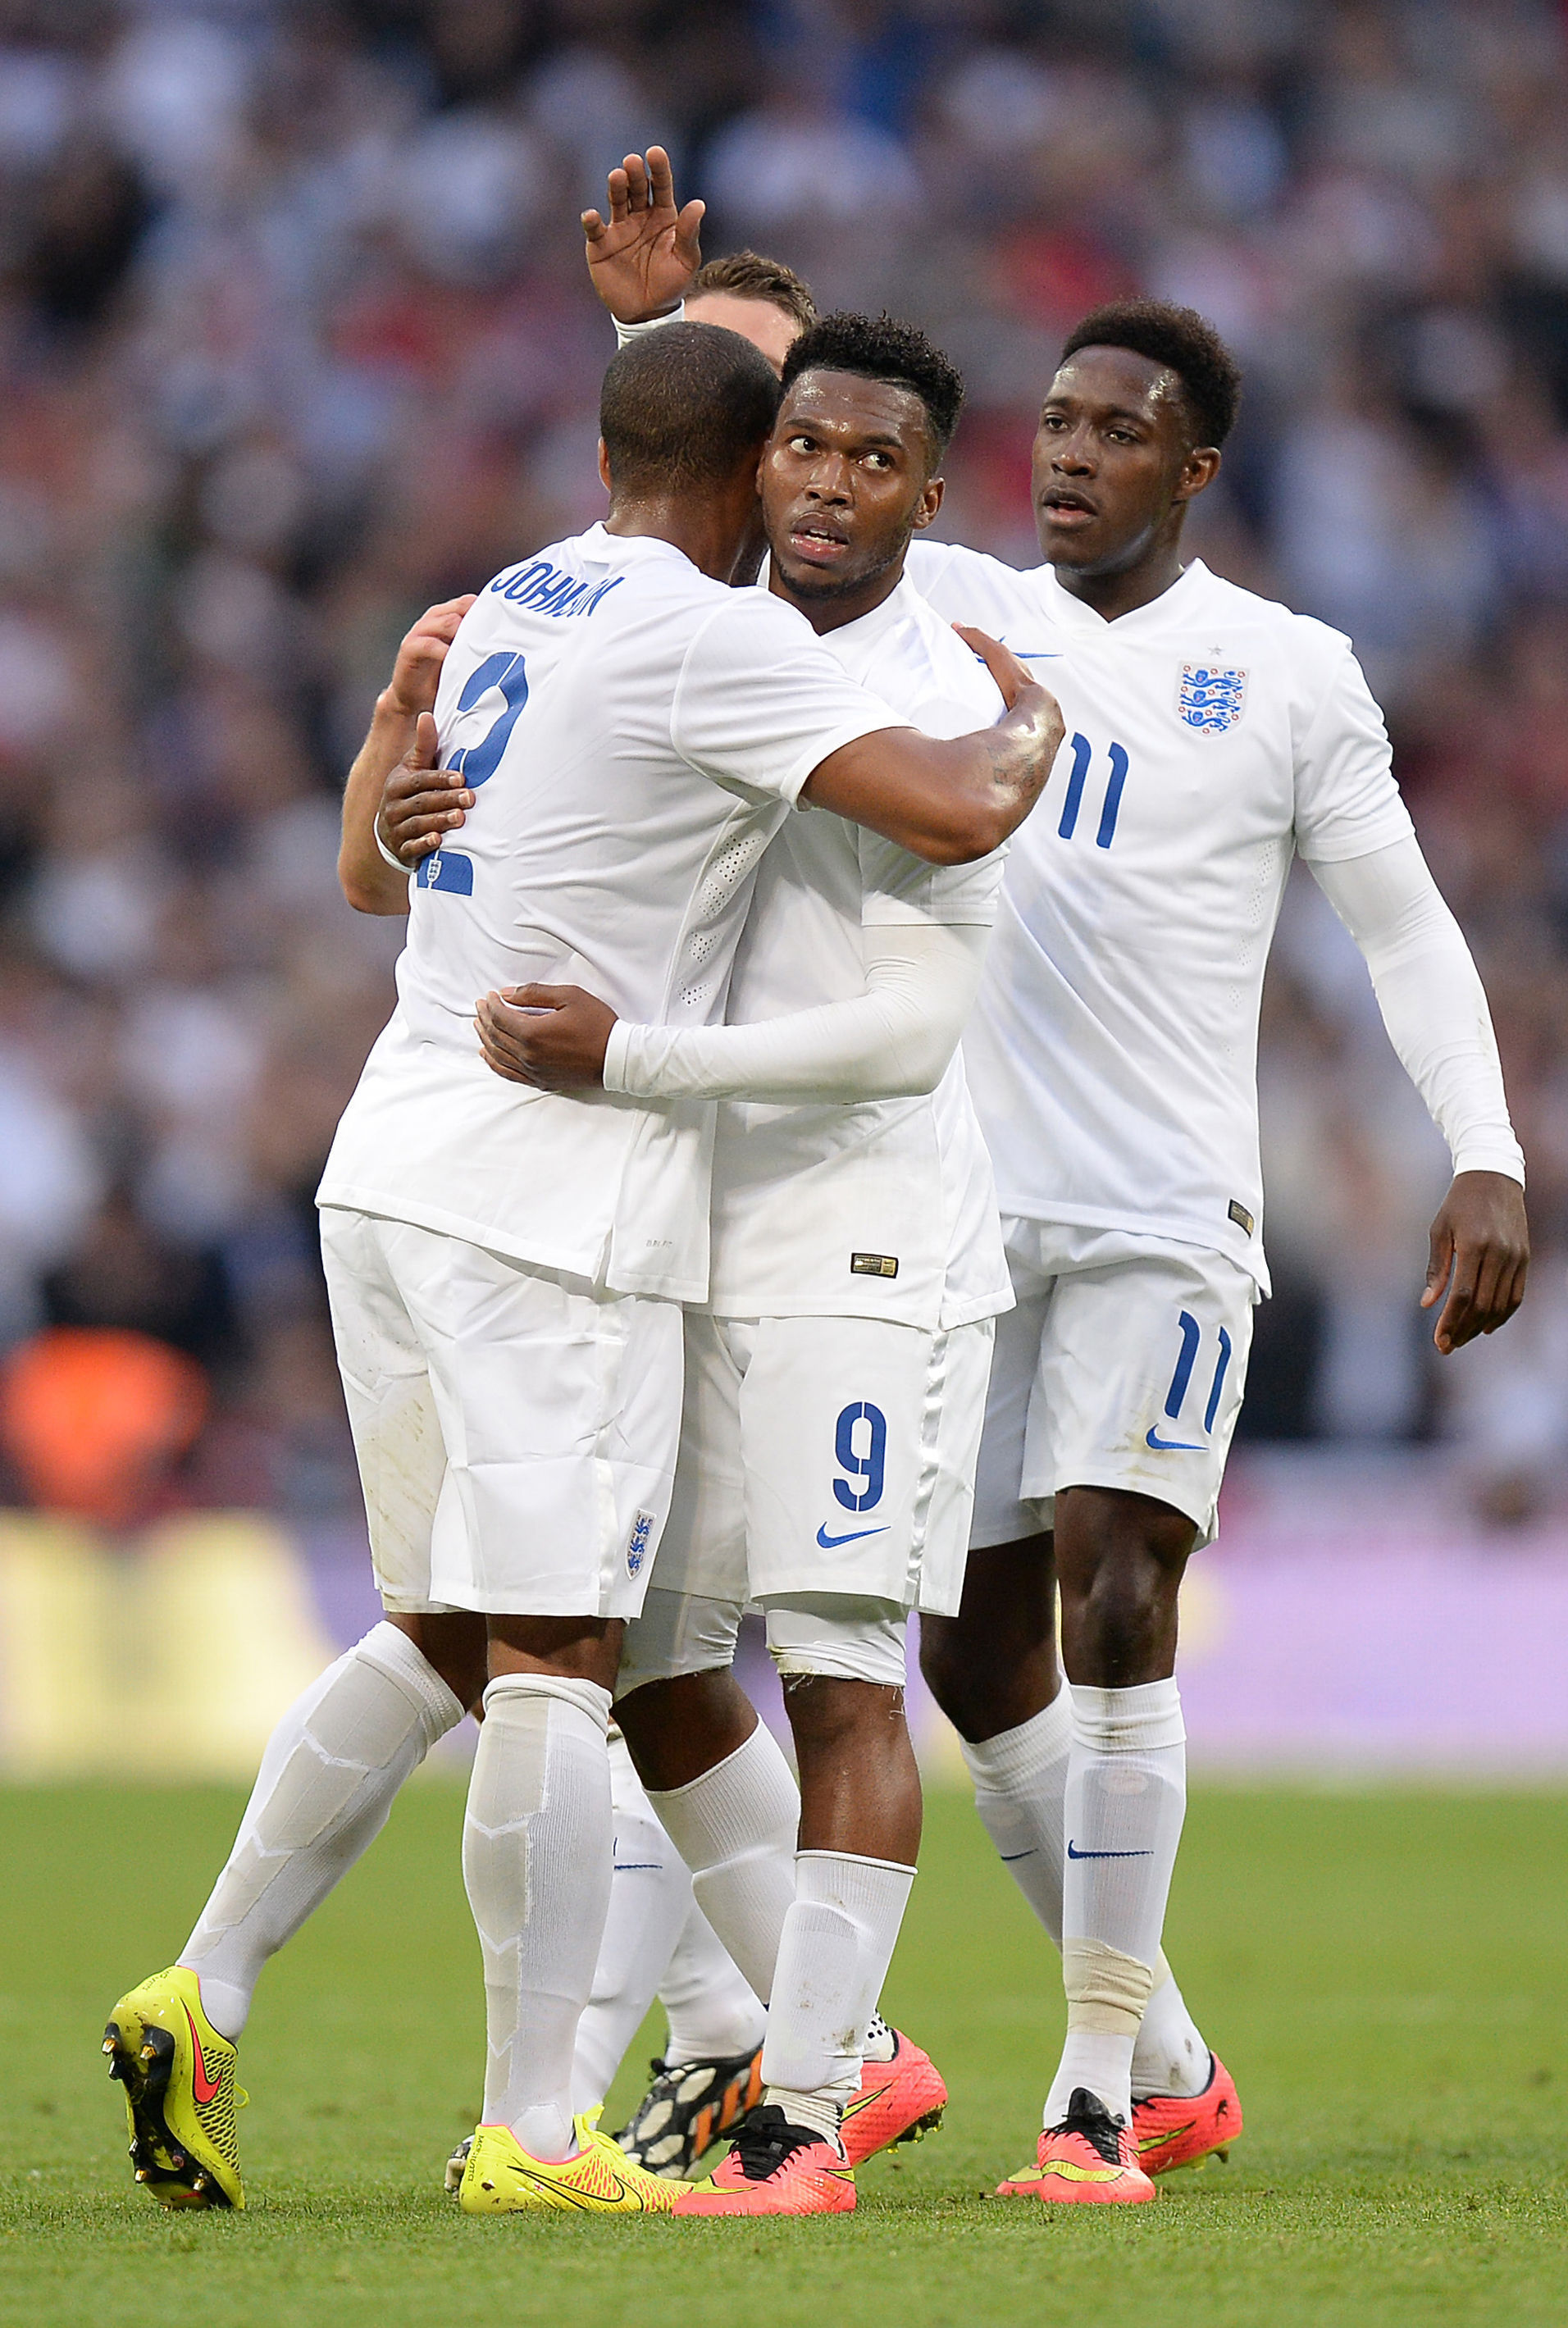 OPENING GOAL: England's Daniel Sturridge celebrates scoring his side's first goal in the 3-0 friendly win over Peru